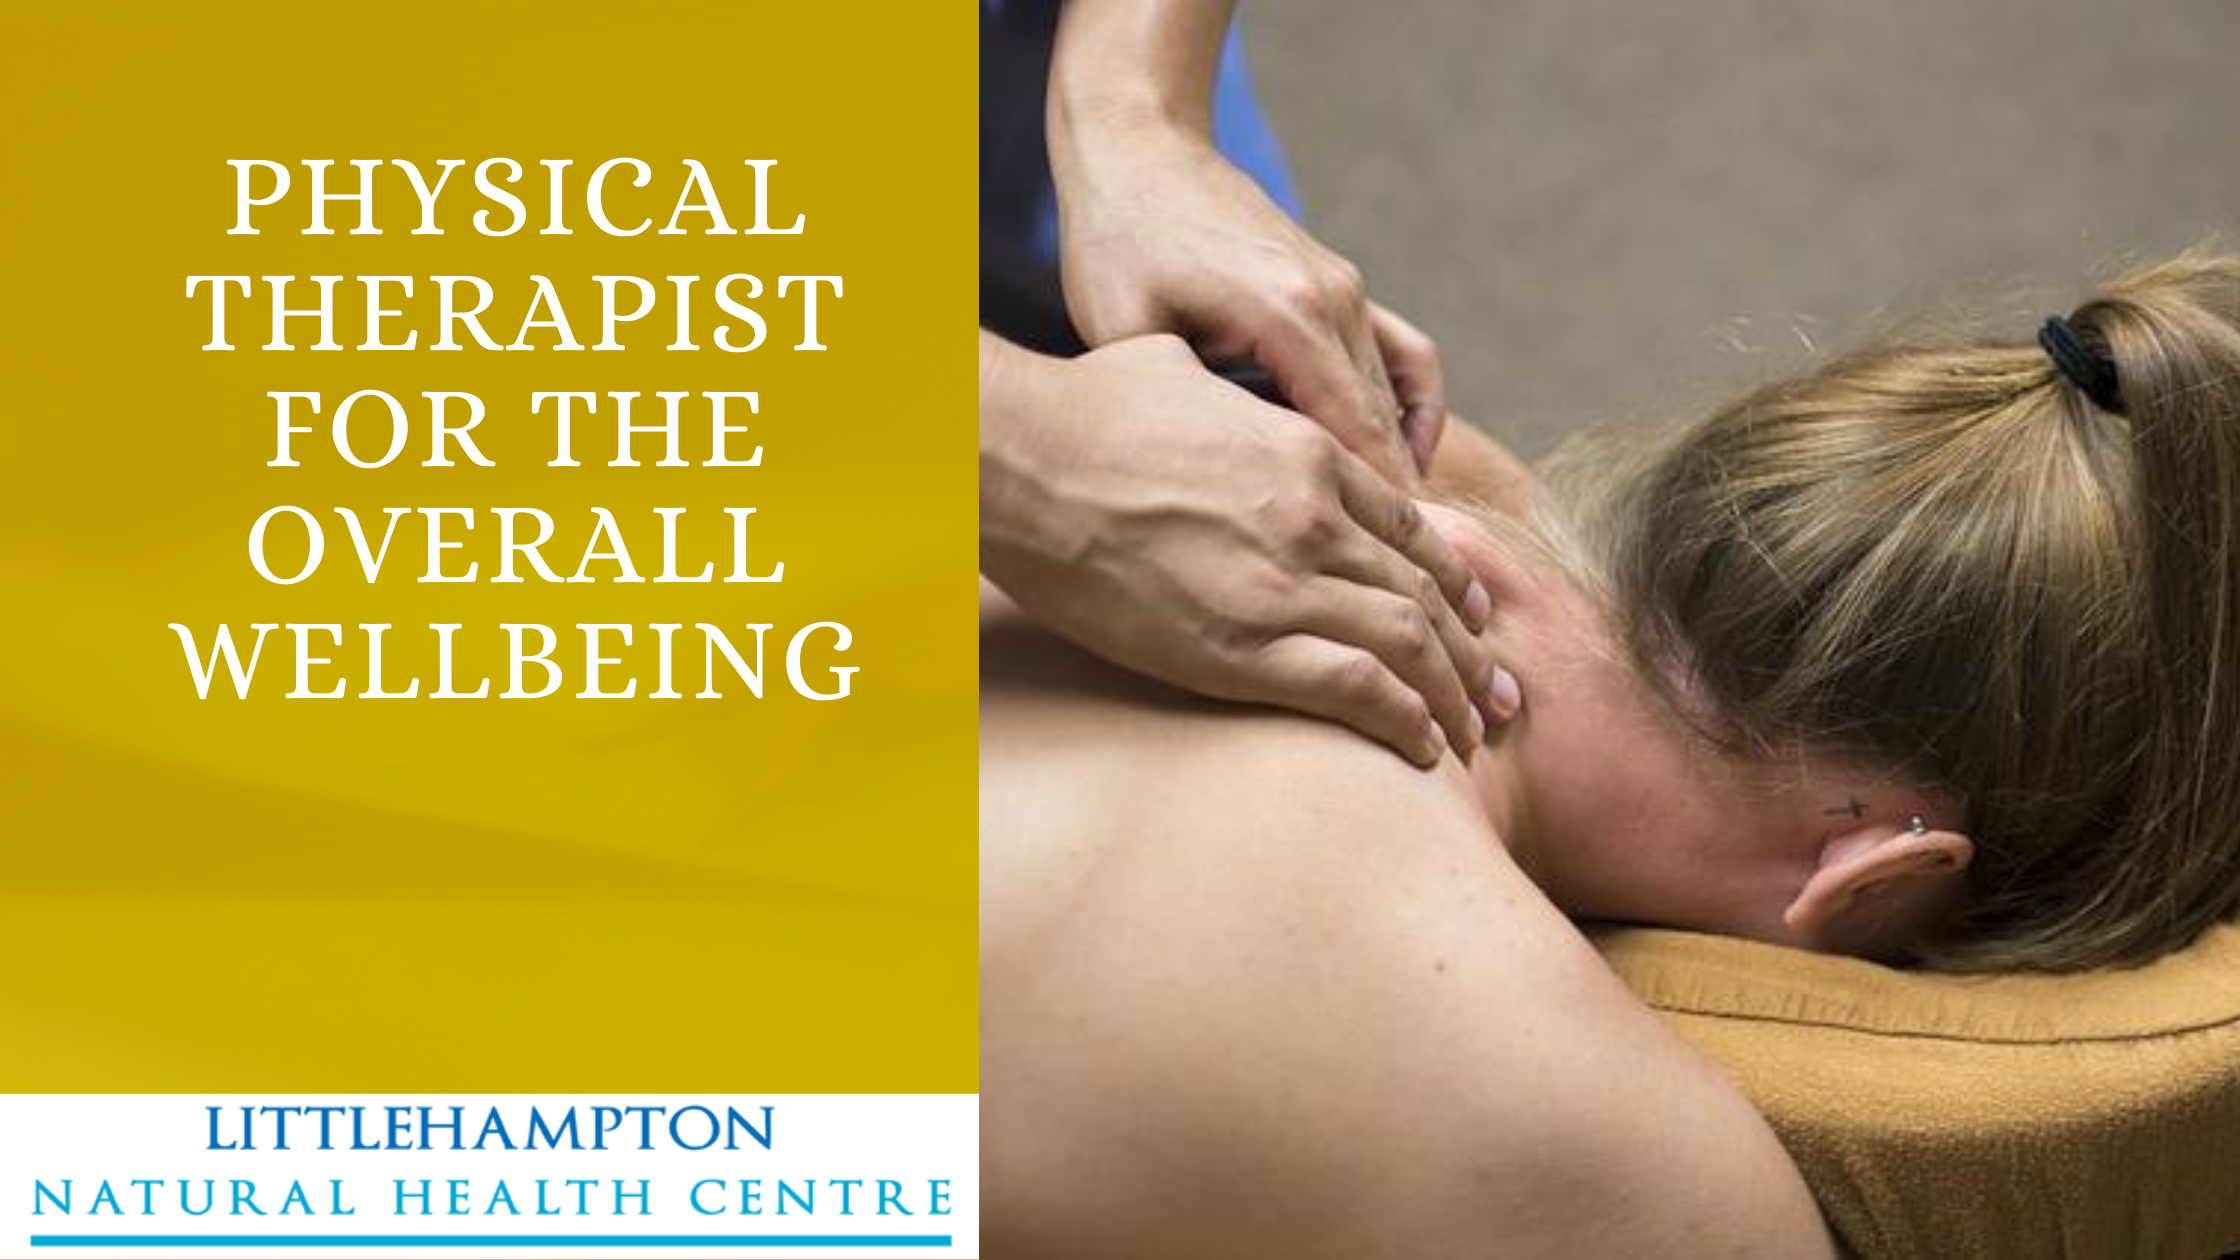 A physical therapist for the overall wellbeing